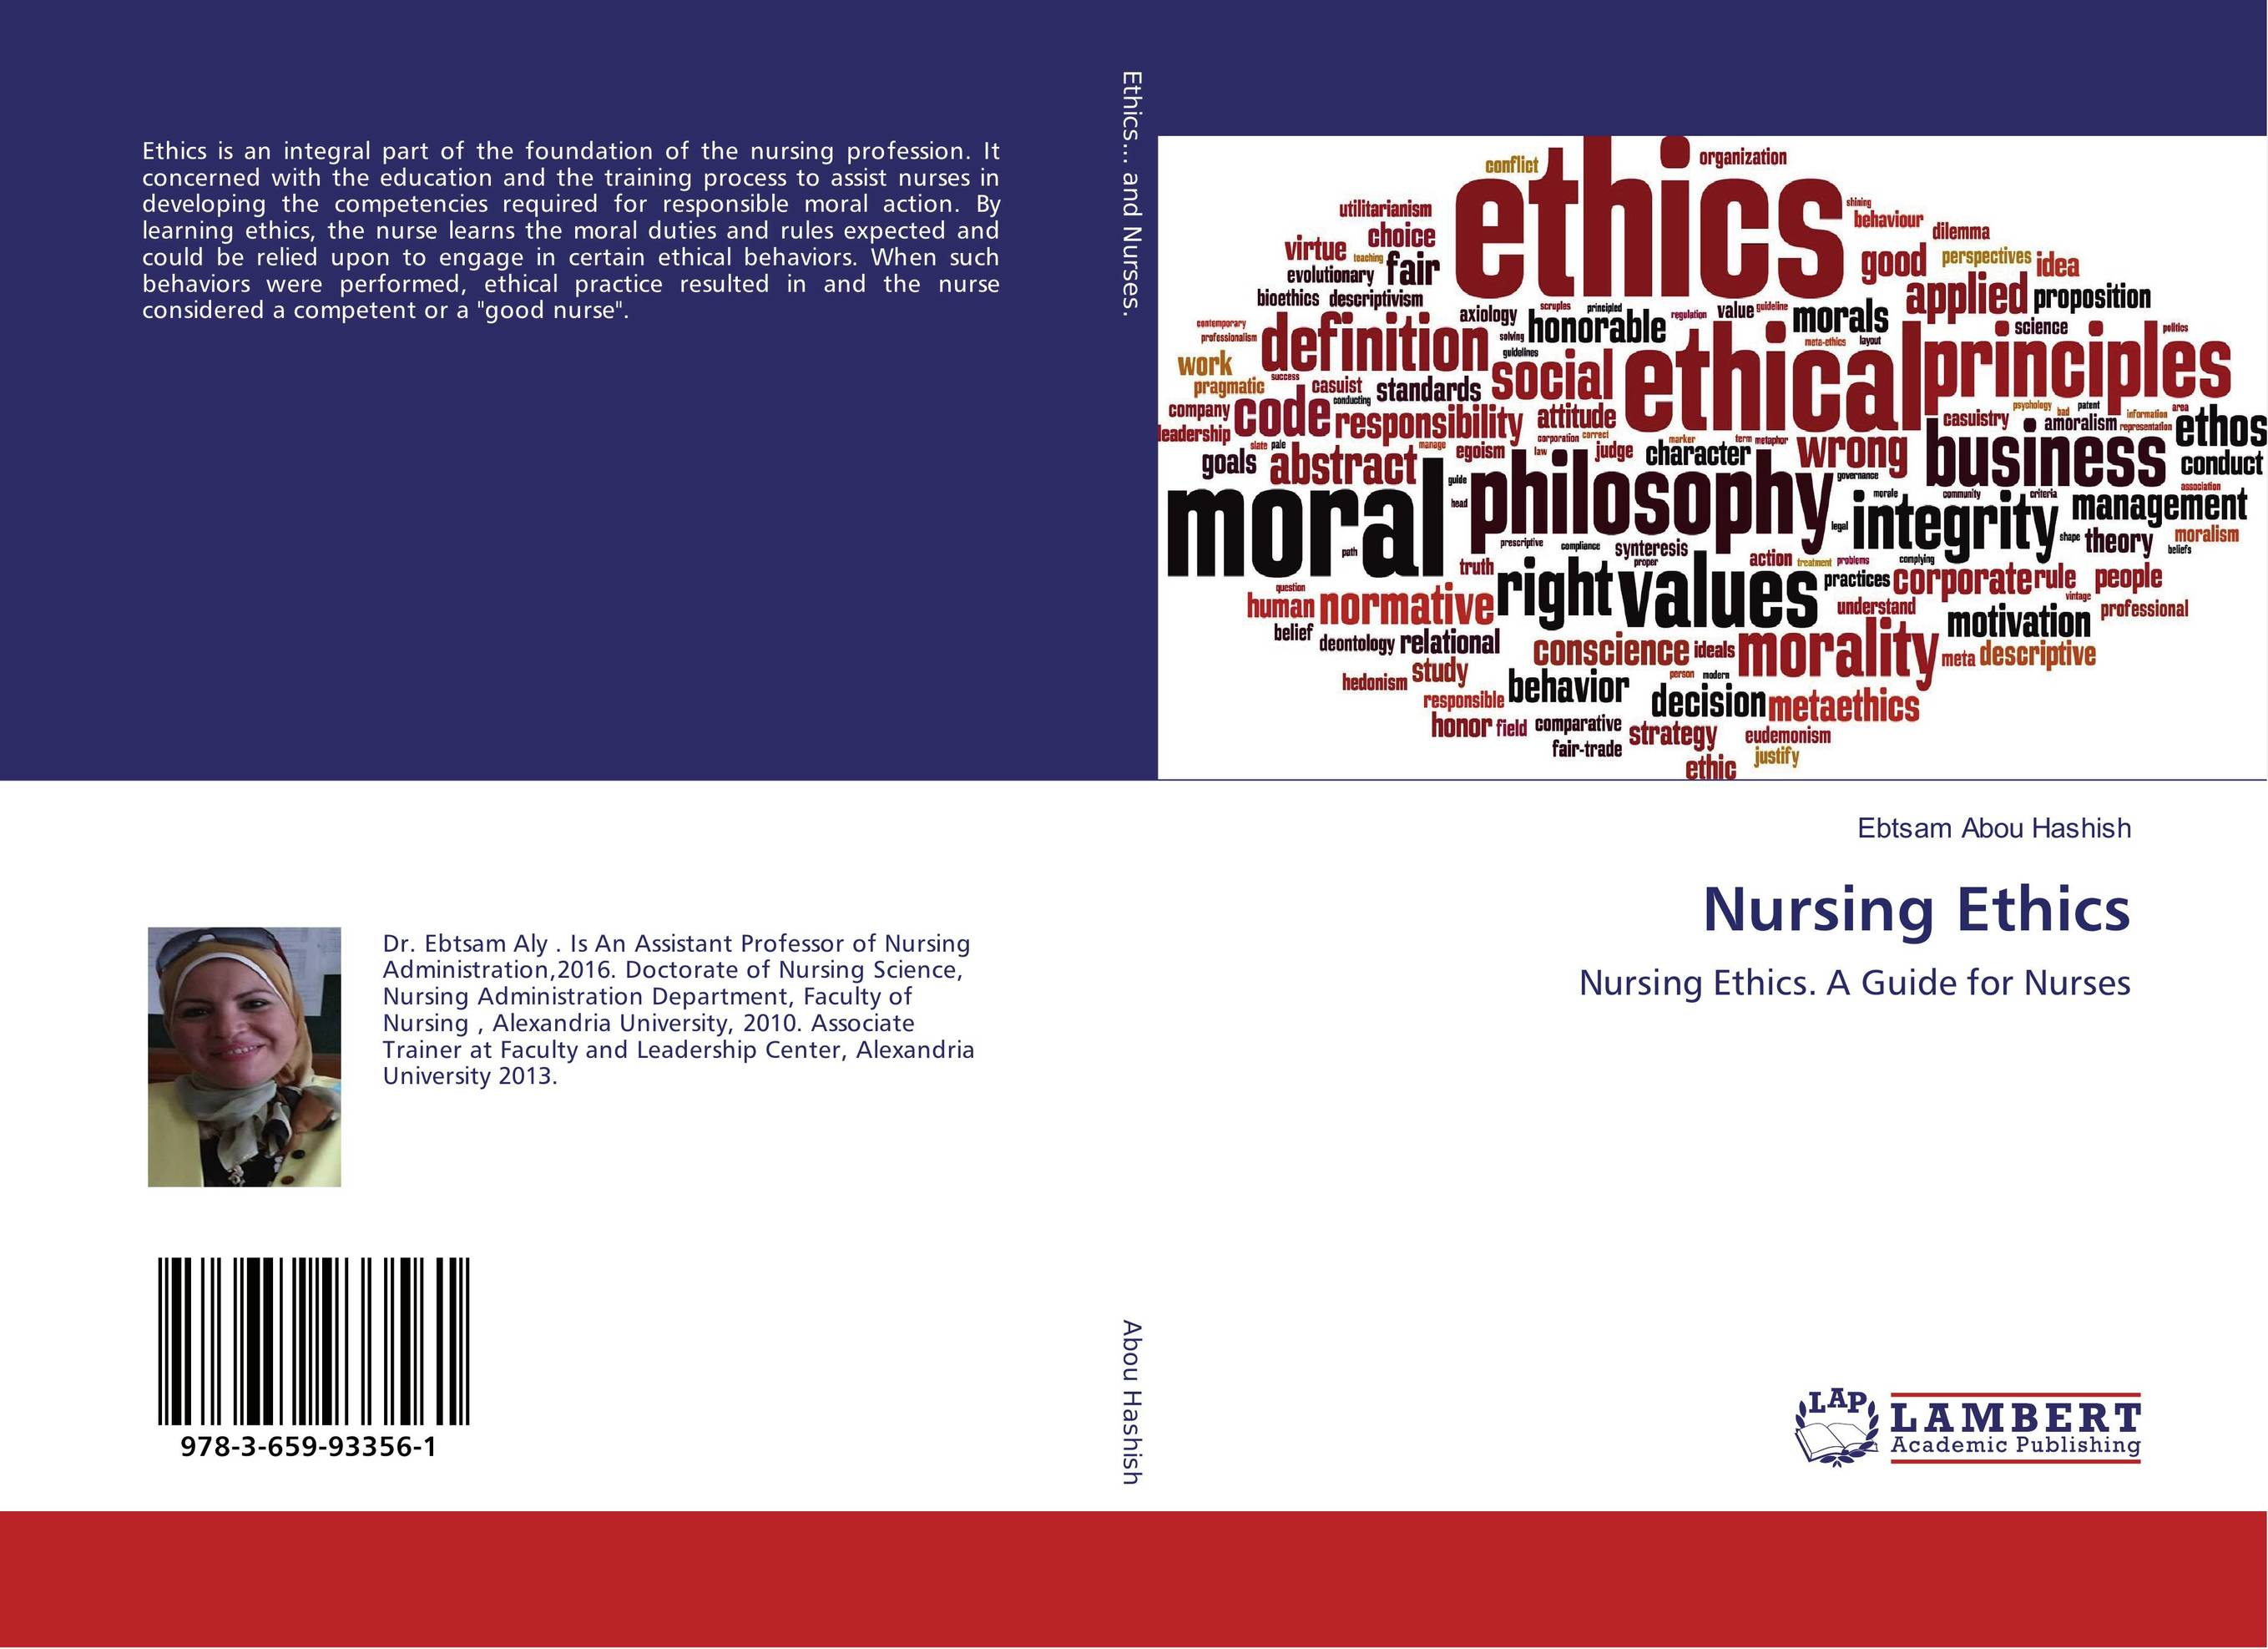 ethical legal dilemma advanced practice nursing case Create an ethical legal decision-making dilemma involving an advanced practice nurse in the field of education, informatics, administration, or a apply relevant codes of conduct that apply to the practice of nursing and your chosen field include one ethical principle and one law that could be violated and.